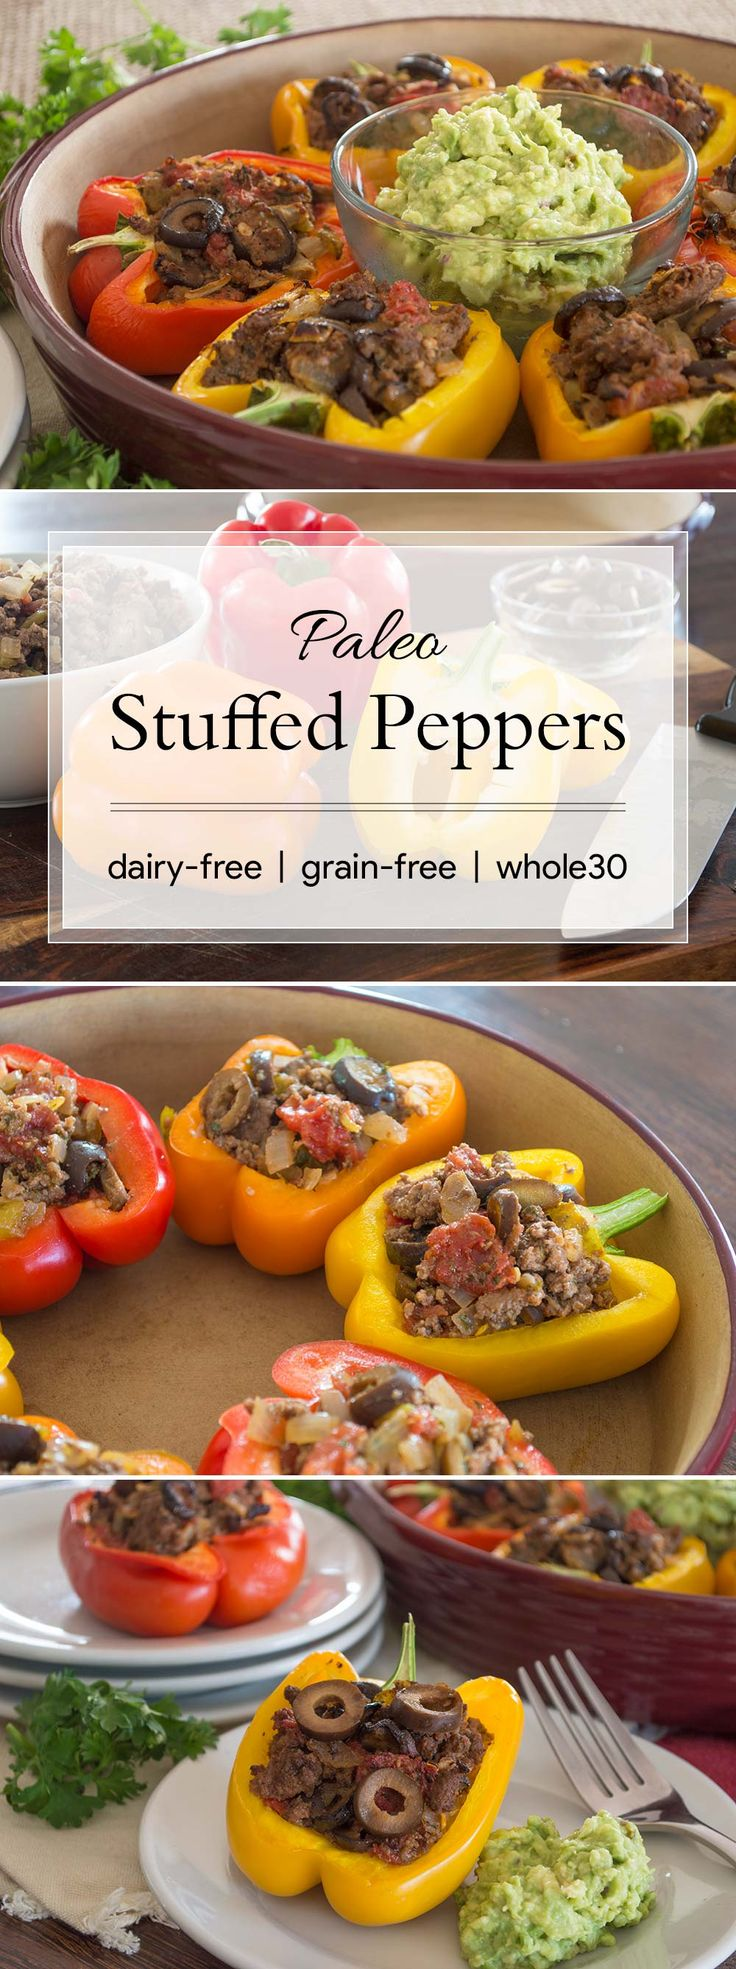 These stuffed peppers are an easy and delicious way to use up your summer produce and have an impressive dinner for your guests. Plus, they are allergen-free and Whole30-compliant. #paleo #whole30